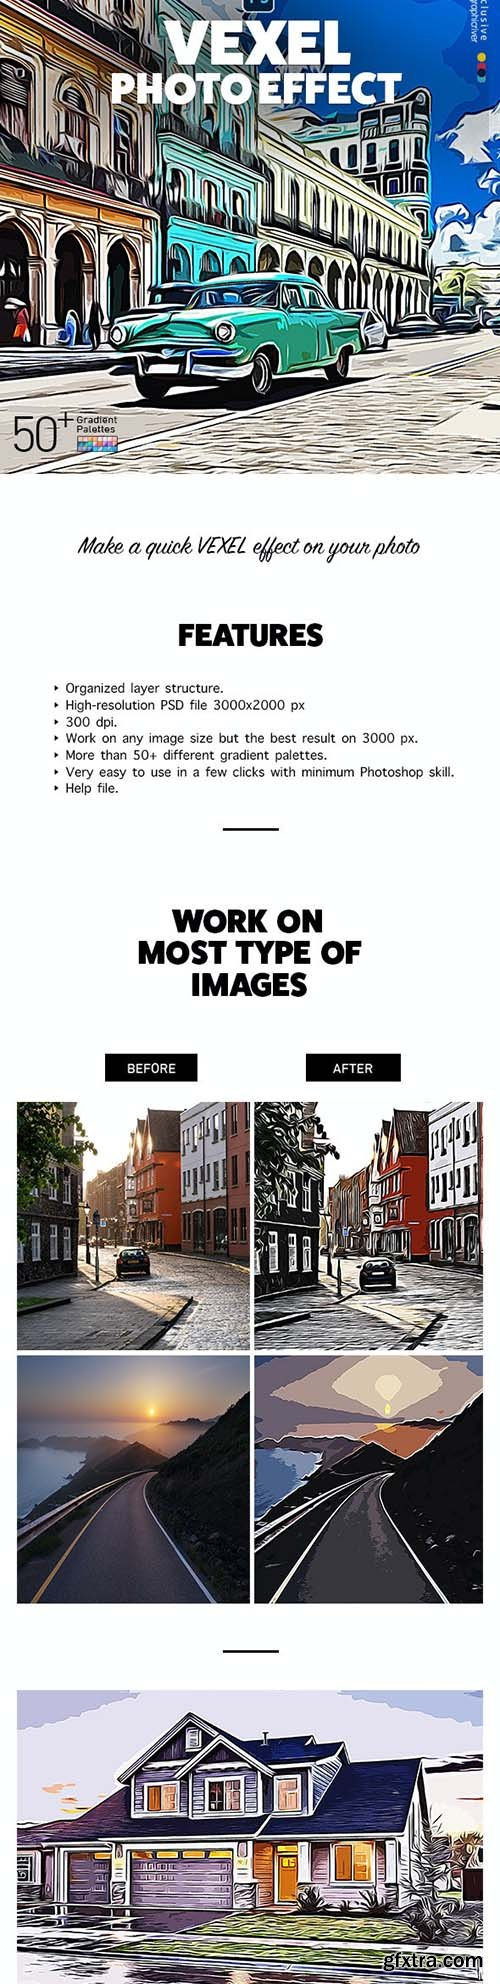 GraphicRiver - Vexel Photo Effect 31523476